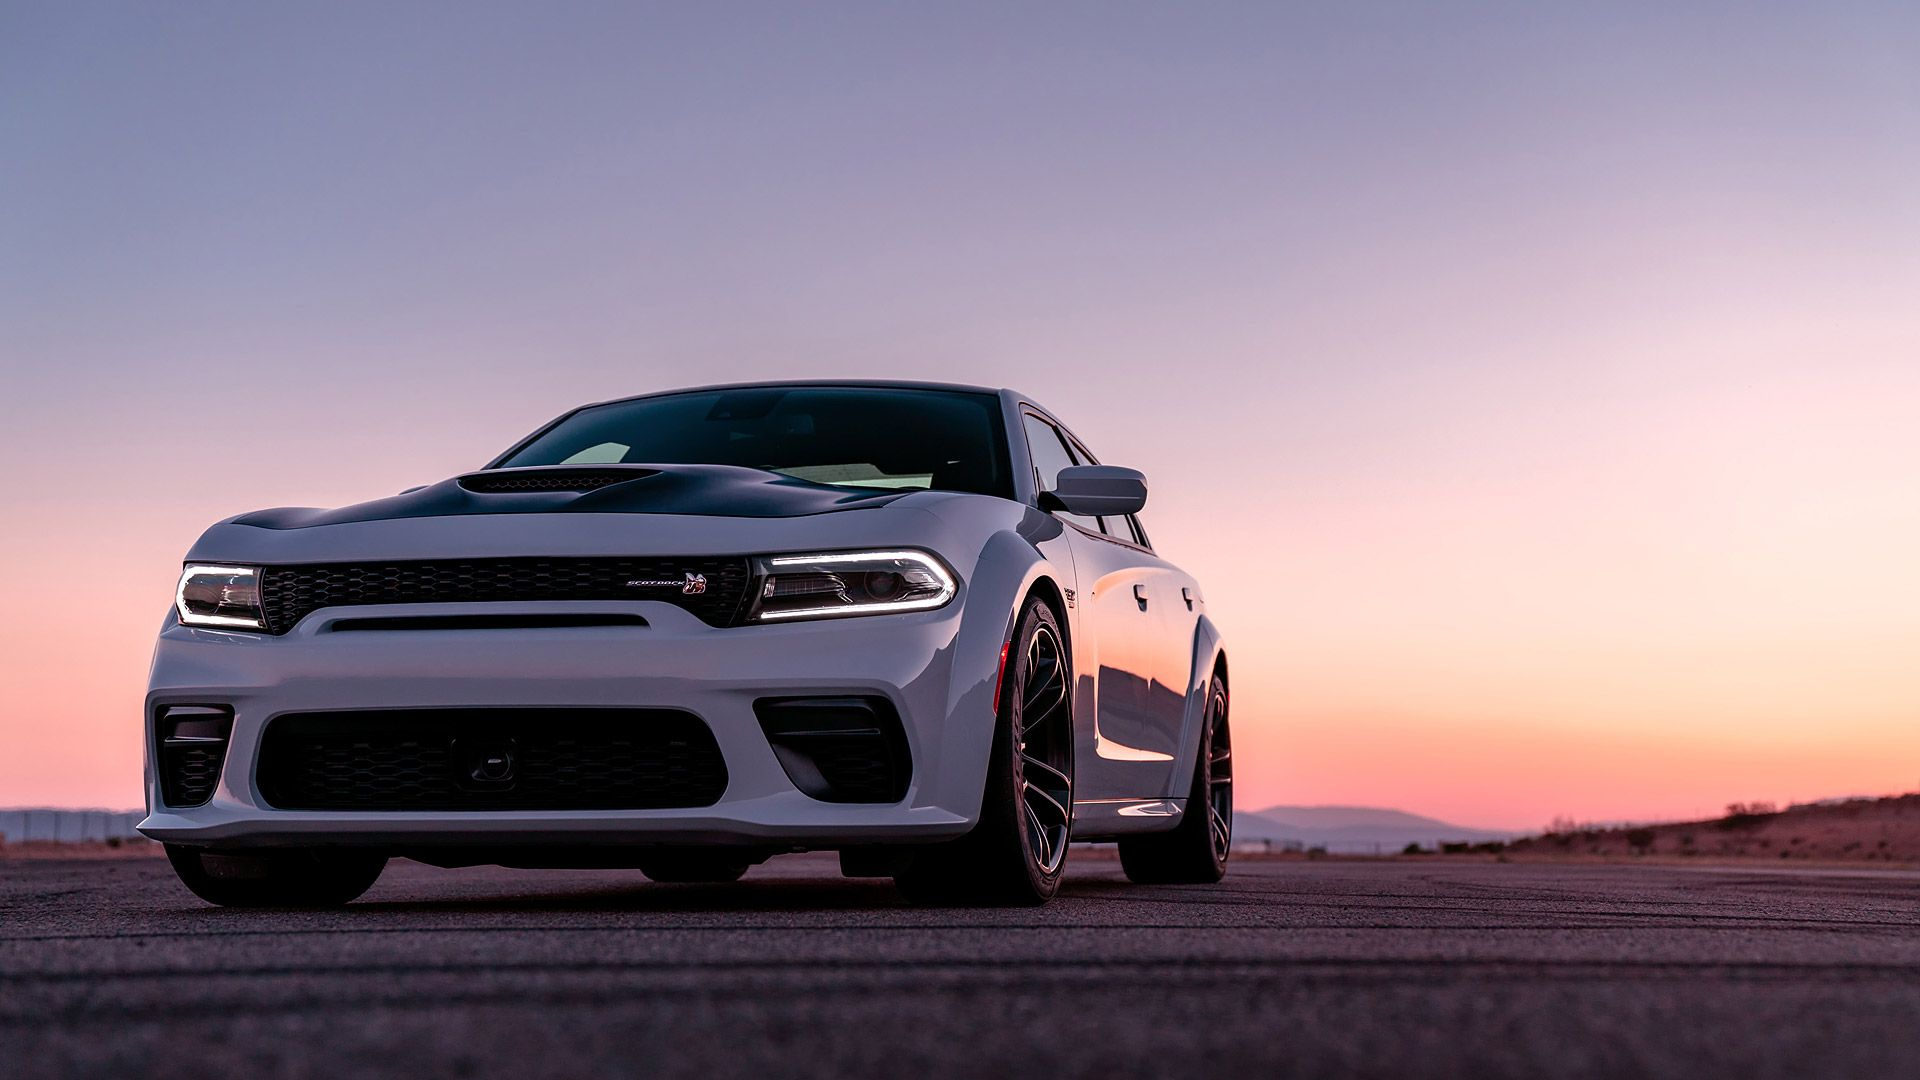 2020 Dodge Charger Scat Pack Widebody Dodge Charger Dodge Charger Srt Charger Srt